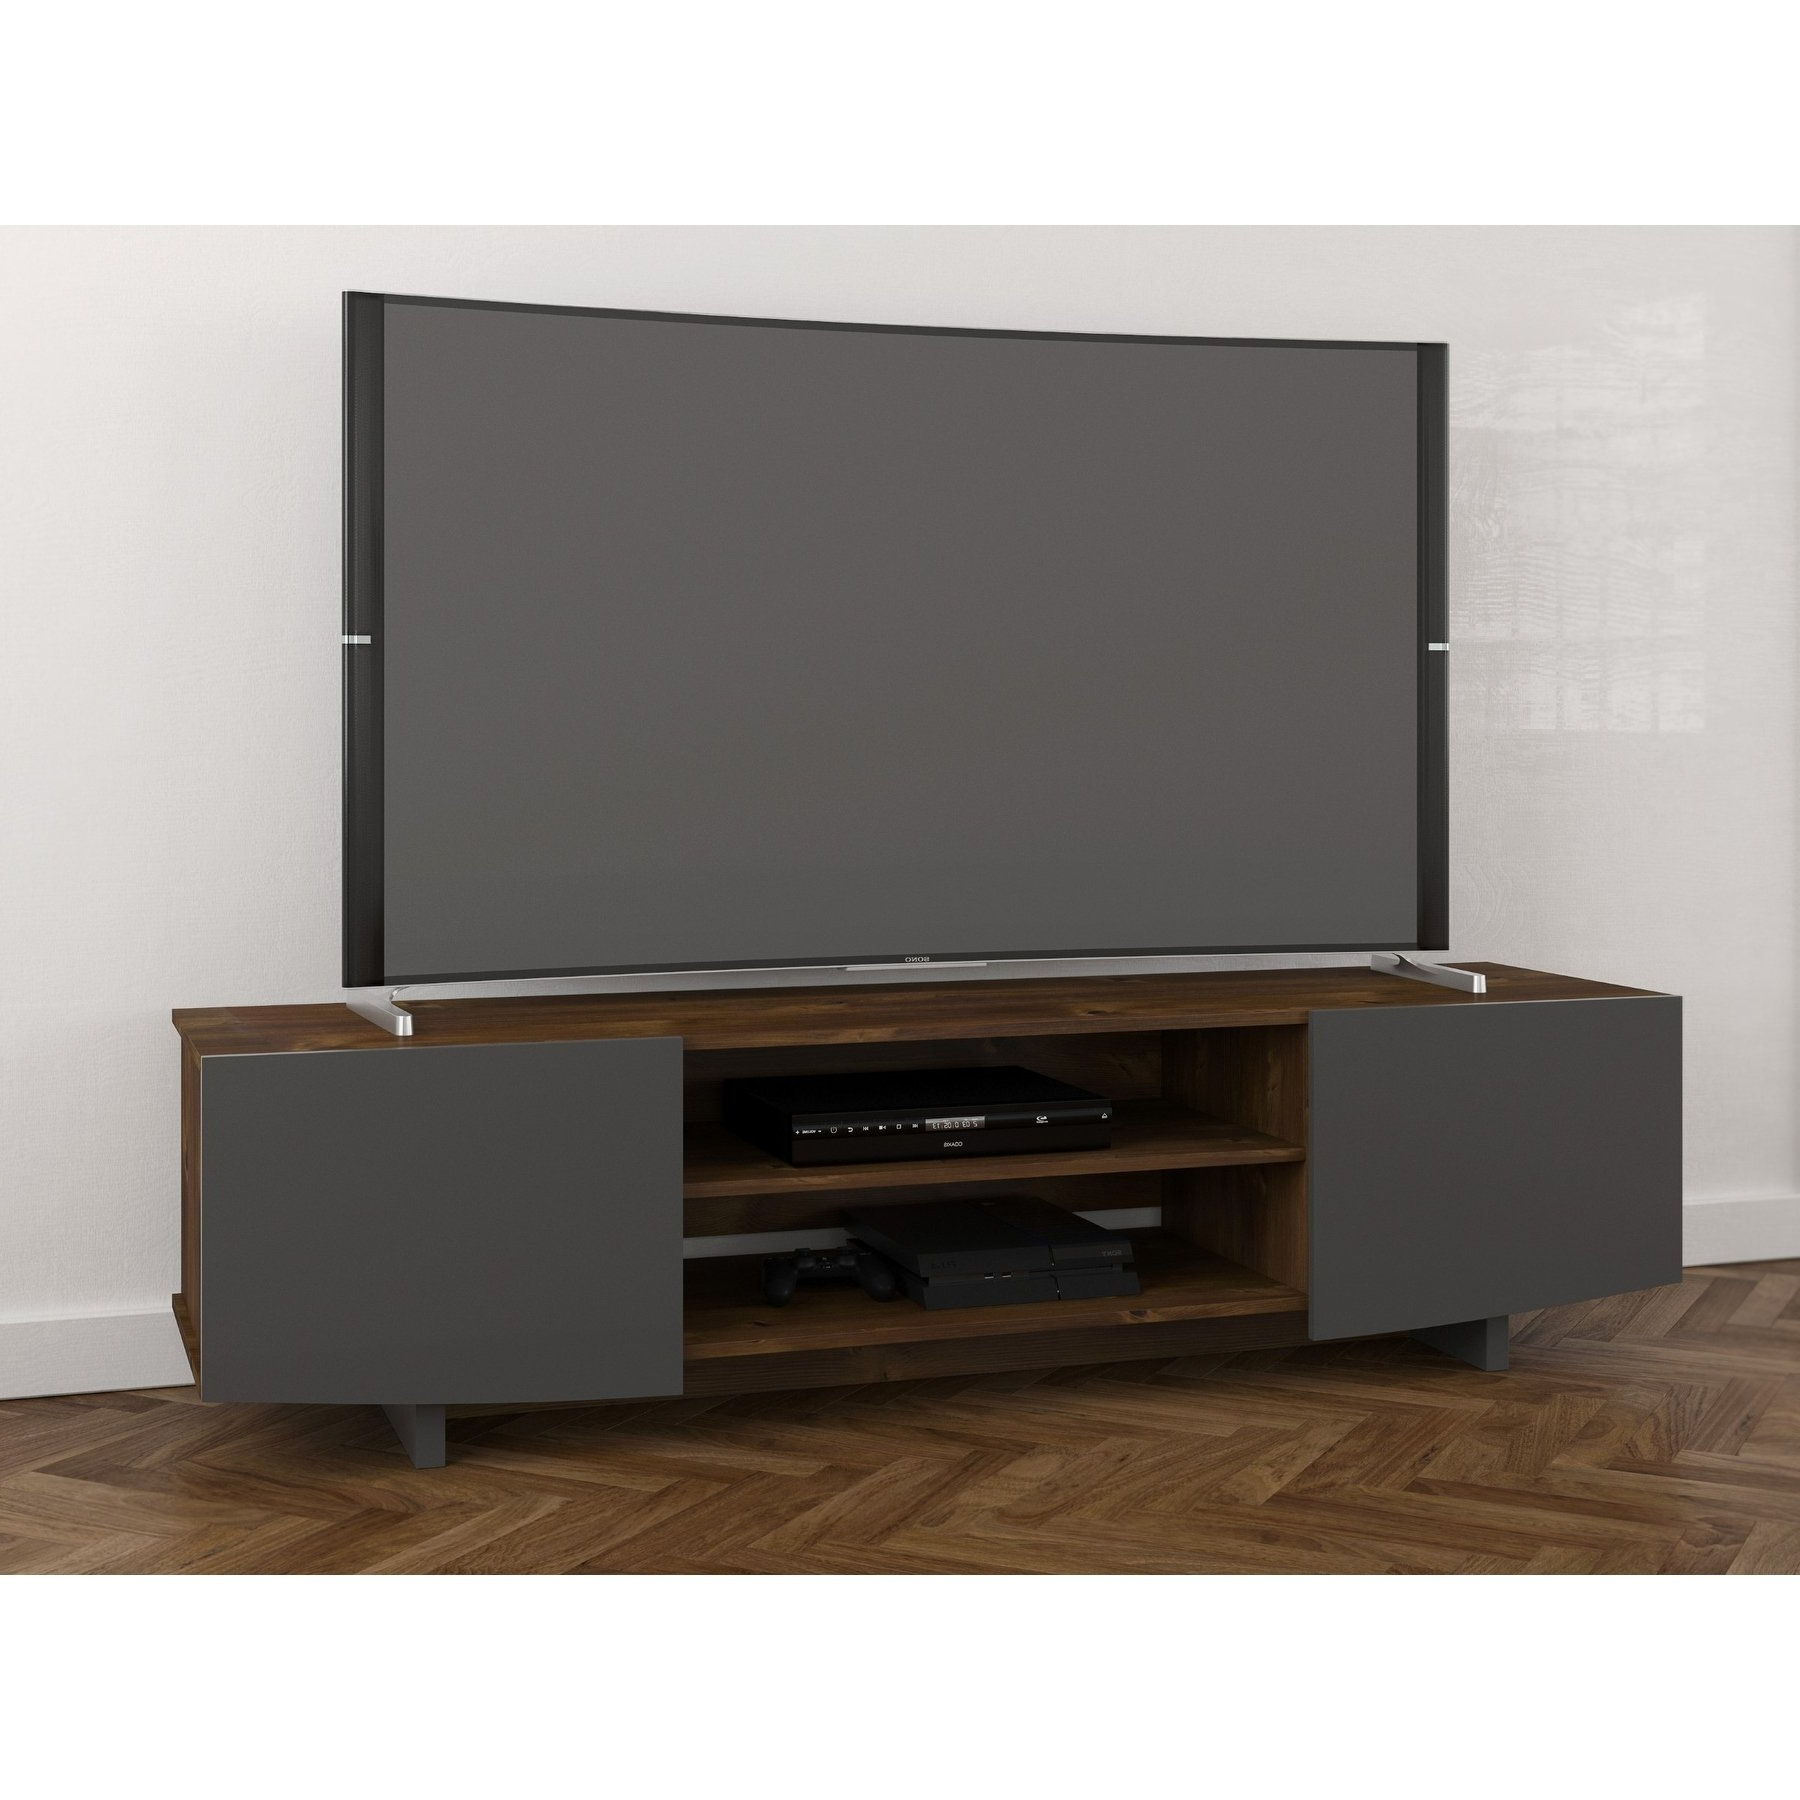 Nexera Helix Tv Stand, Truffle And Charcoal Grey (View 11 of 20)